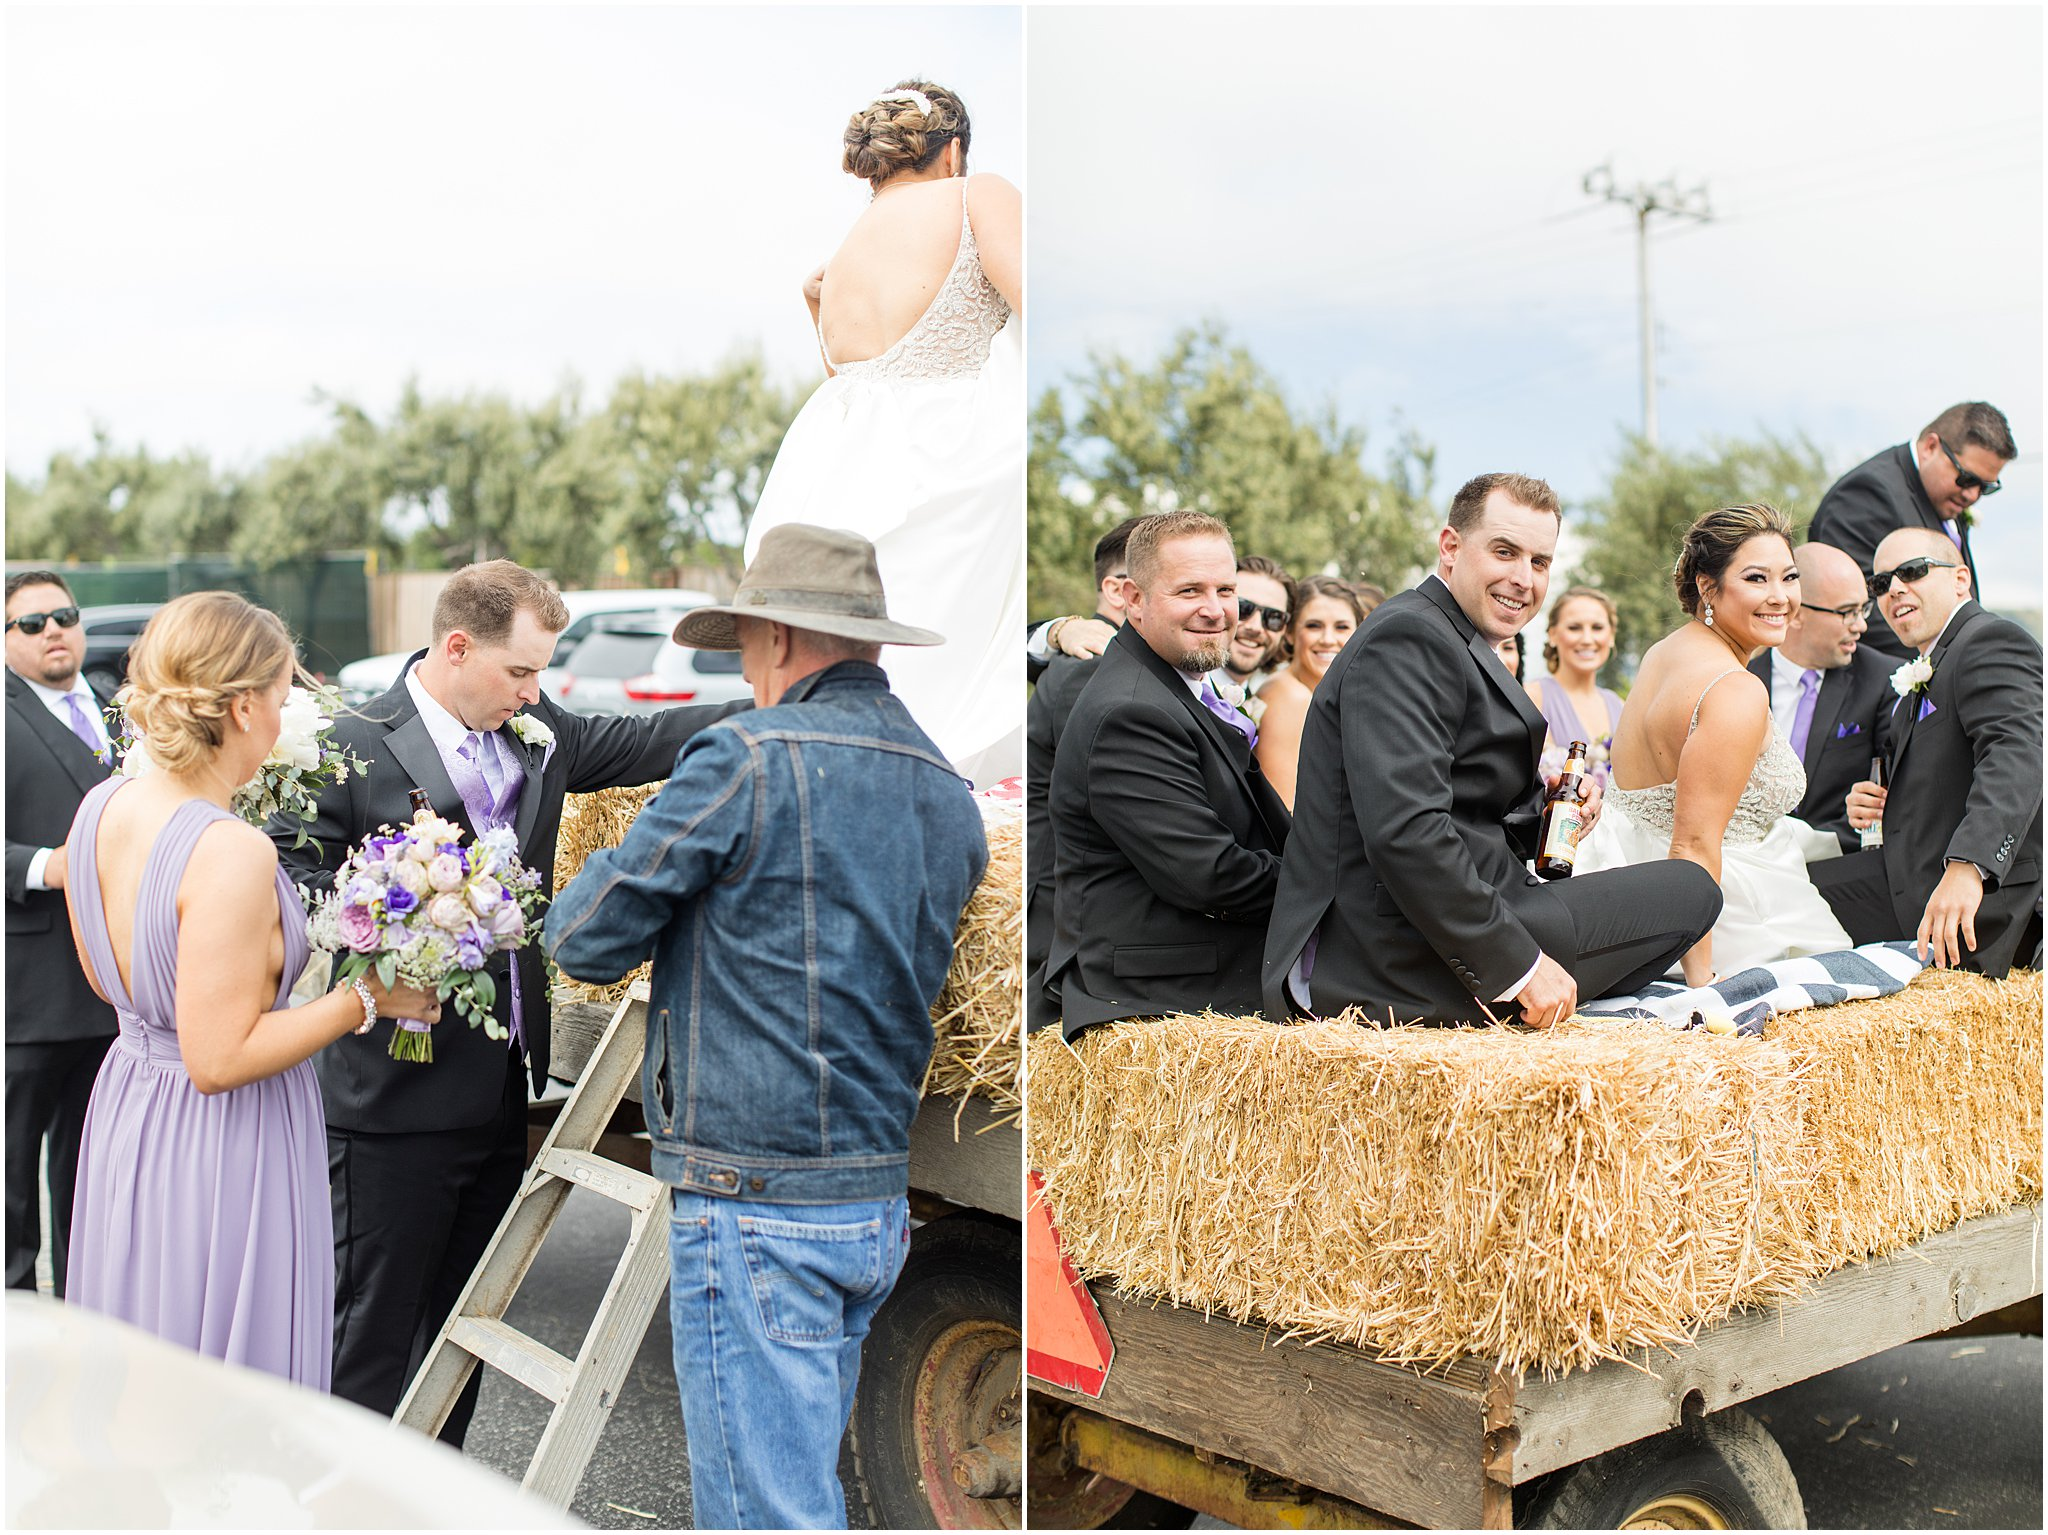 2019 wedding san juan bautista hacienda de leal vineyards bay area wedding photographer_0058.jpg